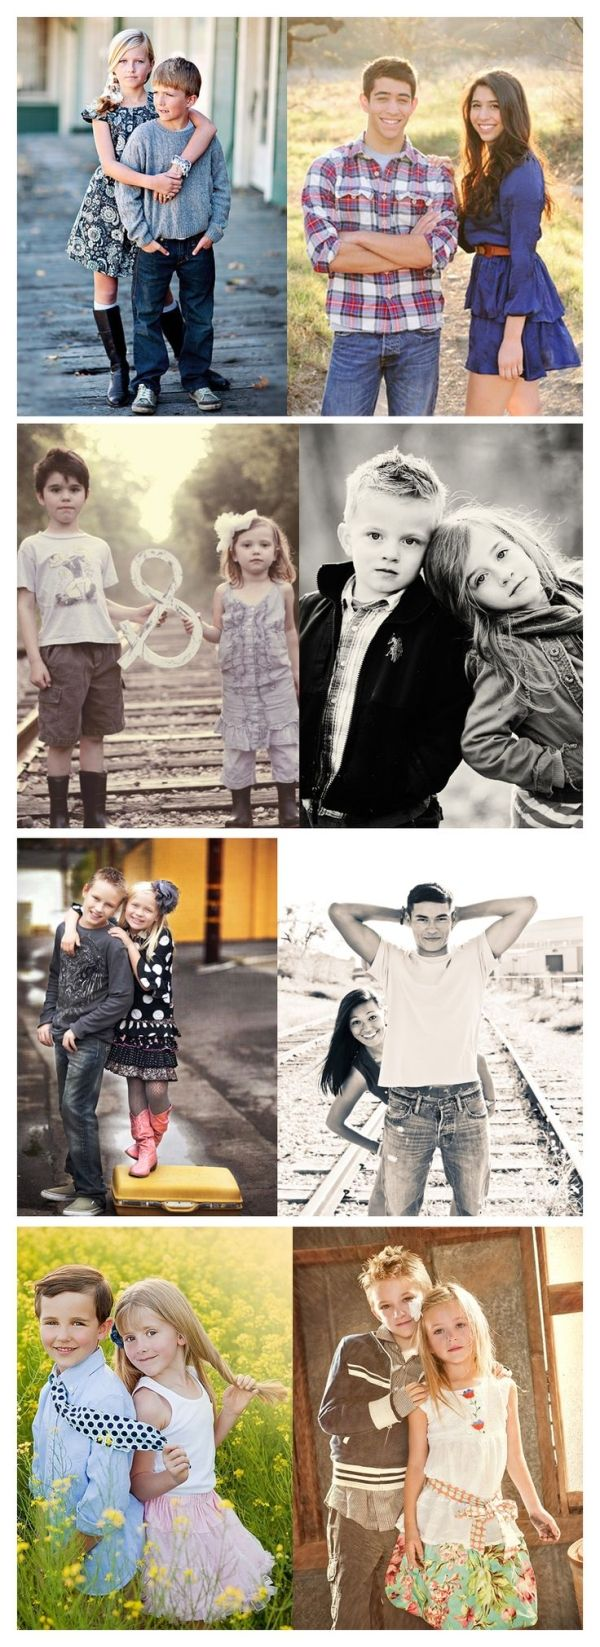 Brother & Sister. Sibling poses. Photos by felicia